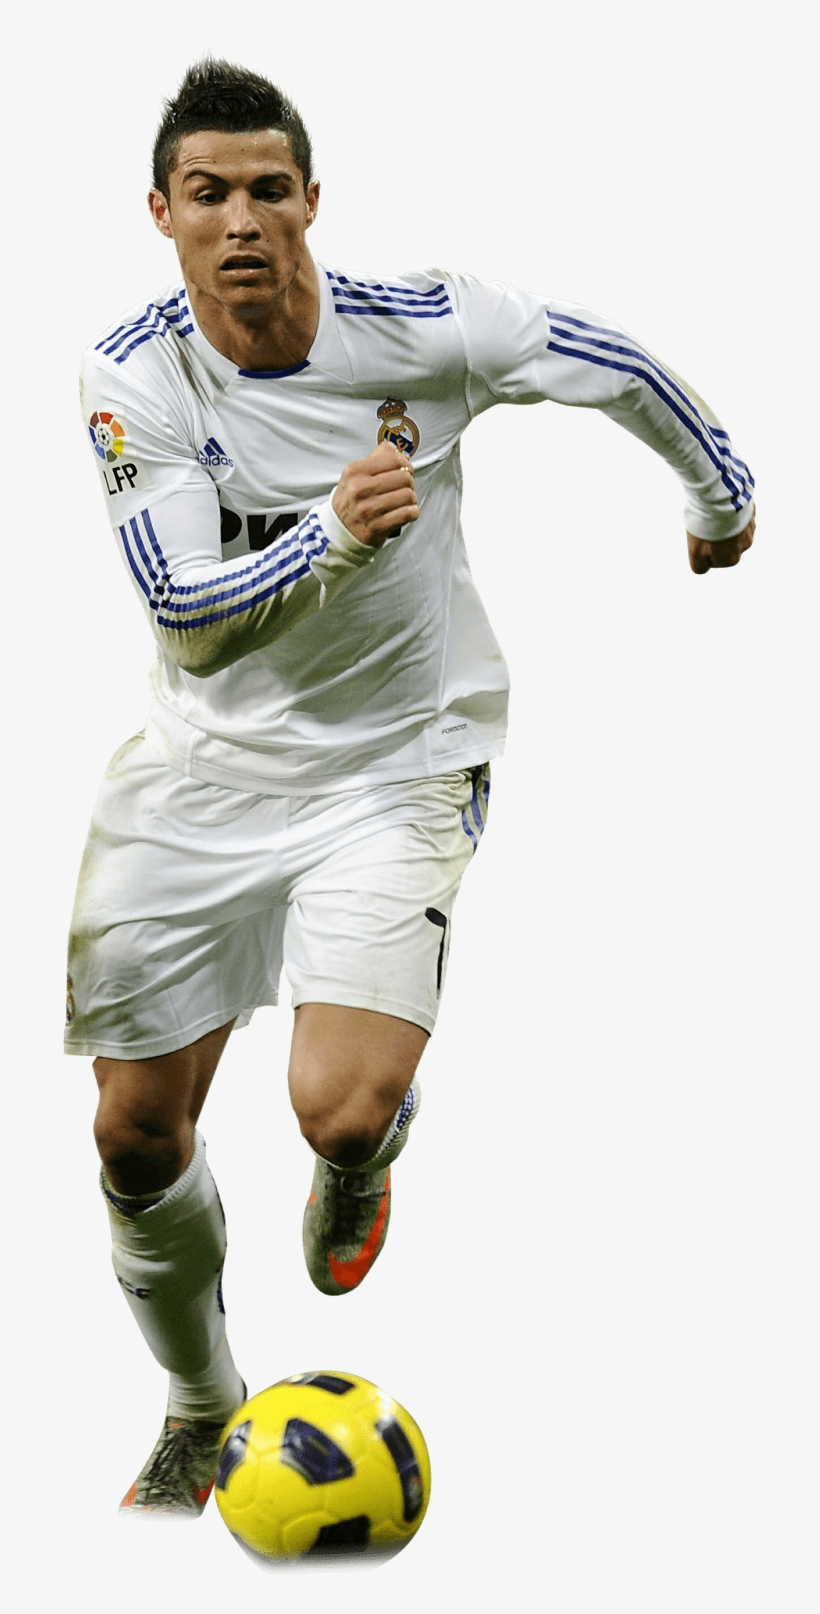 Cristiano Ronaldo Png File Cr7 En Png Transparent Png 822x1024 Free Download On Nicepng